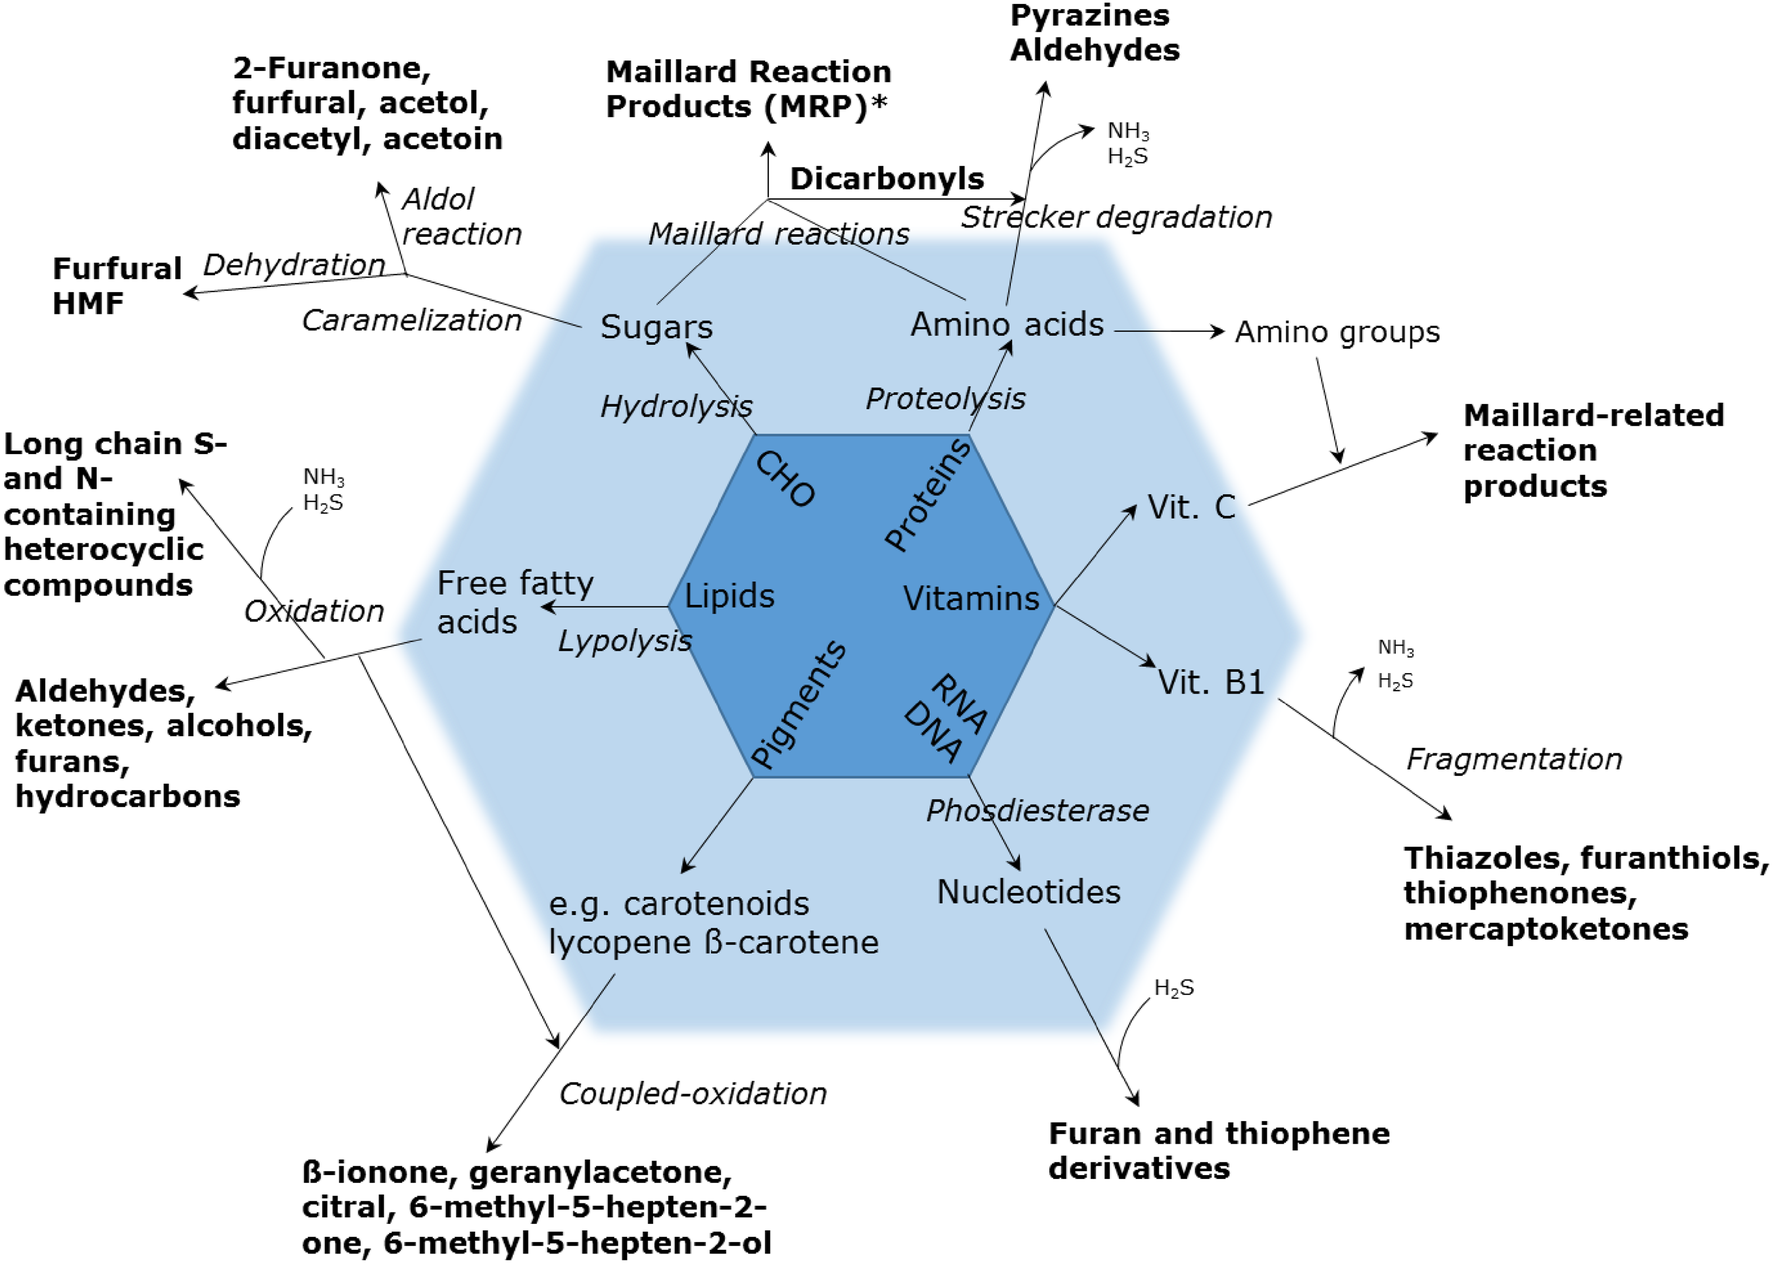 Mass spectrometry-based metabolomics of volatiles as a new